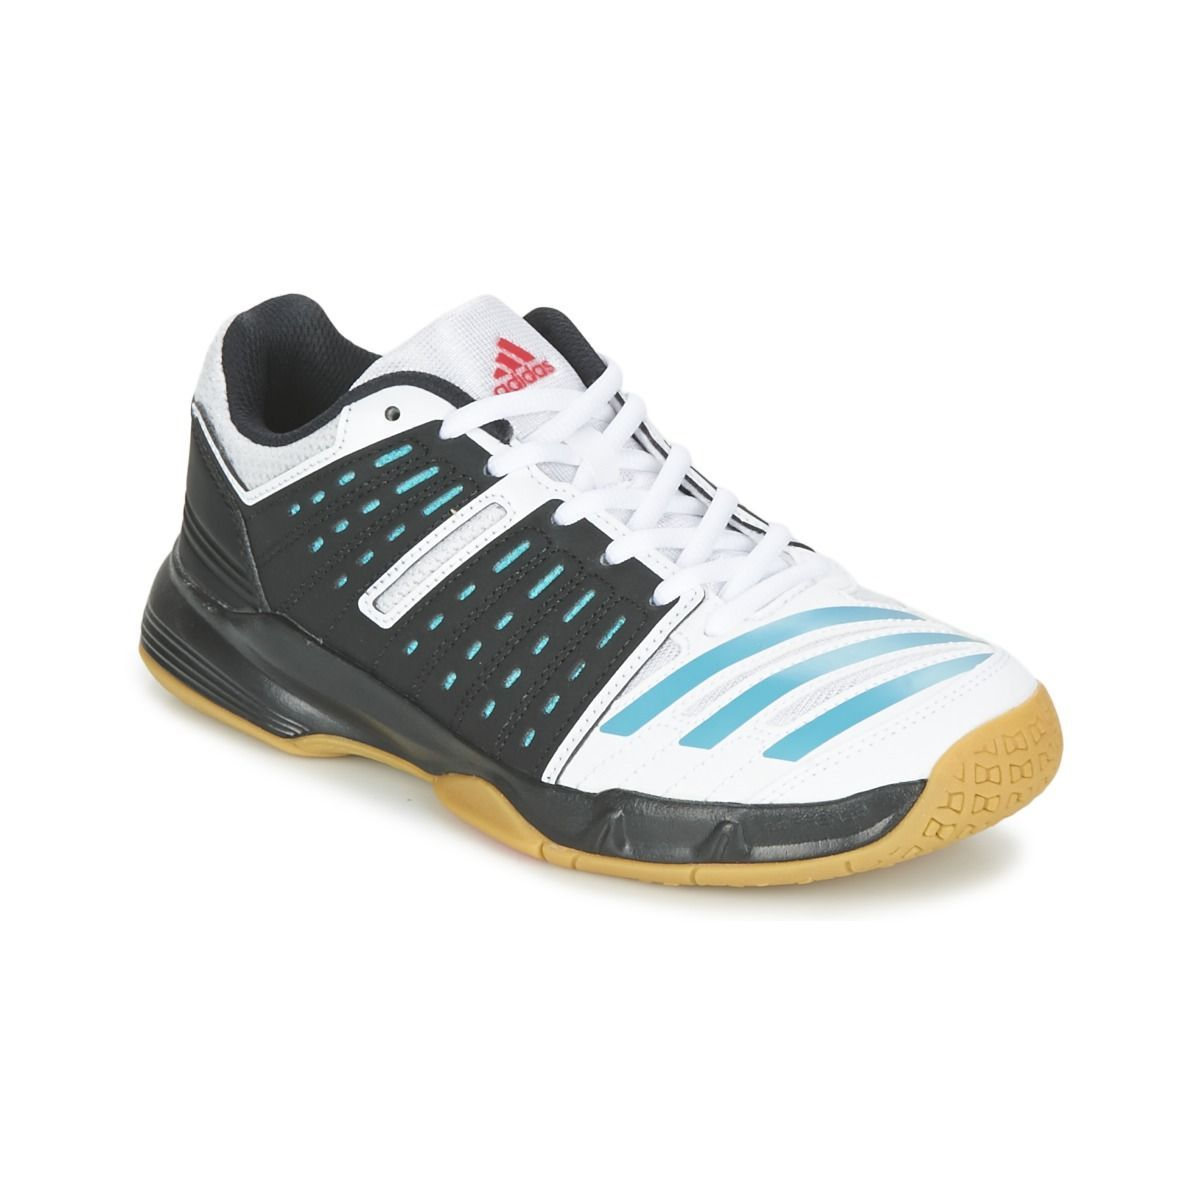 Adidas Essence 12 Women - Black White Blue